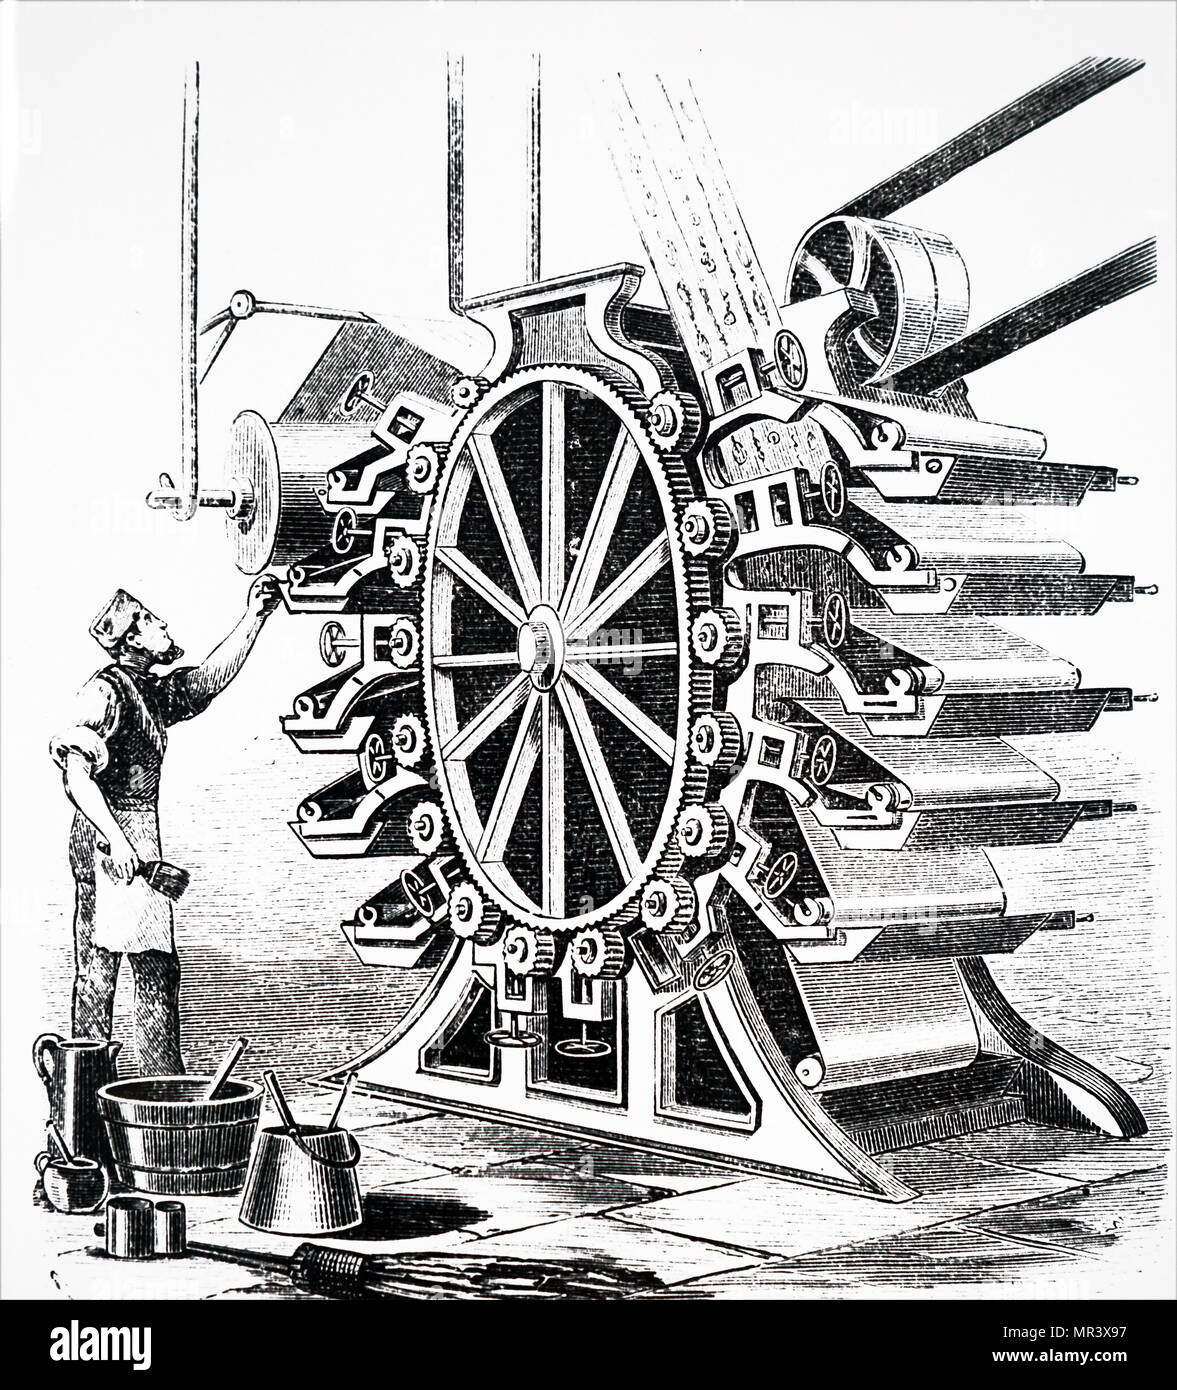 Illustration depicting a wallpaper printing machine. Dated 19th century - Stock Image